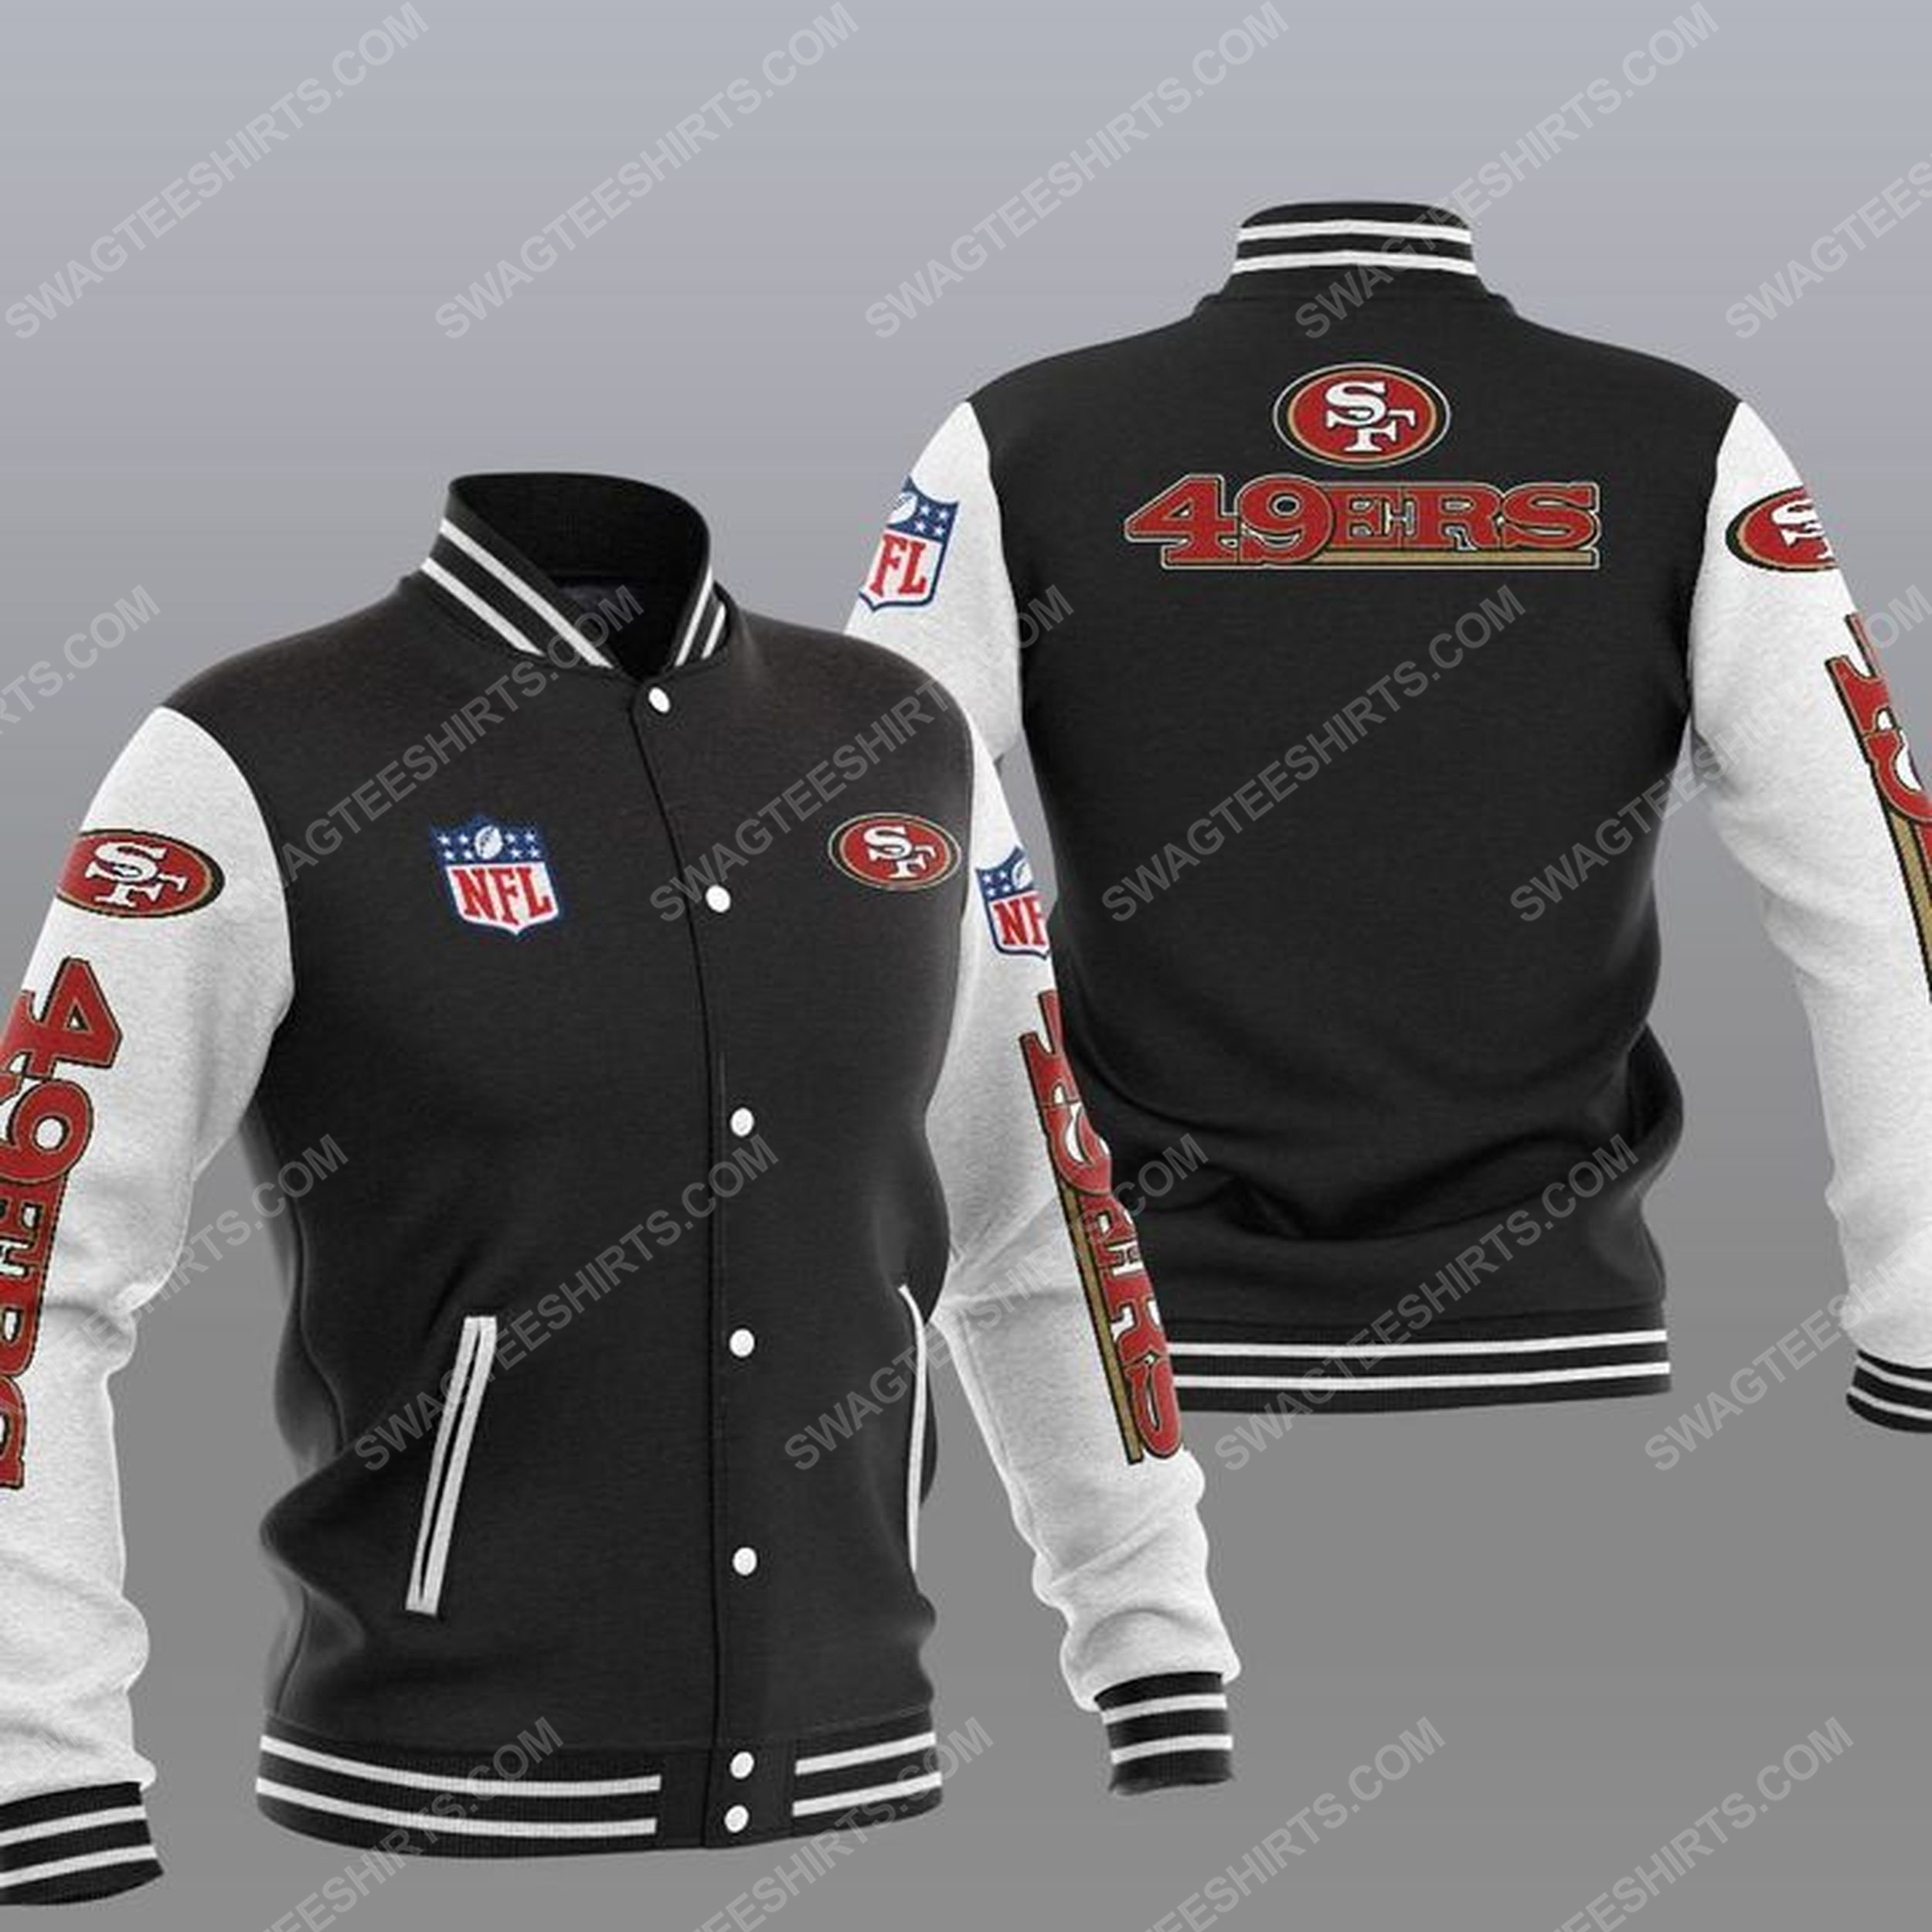 The san francisco 49ers nfl all over print shirt